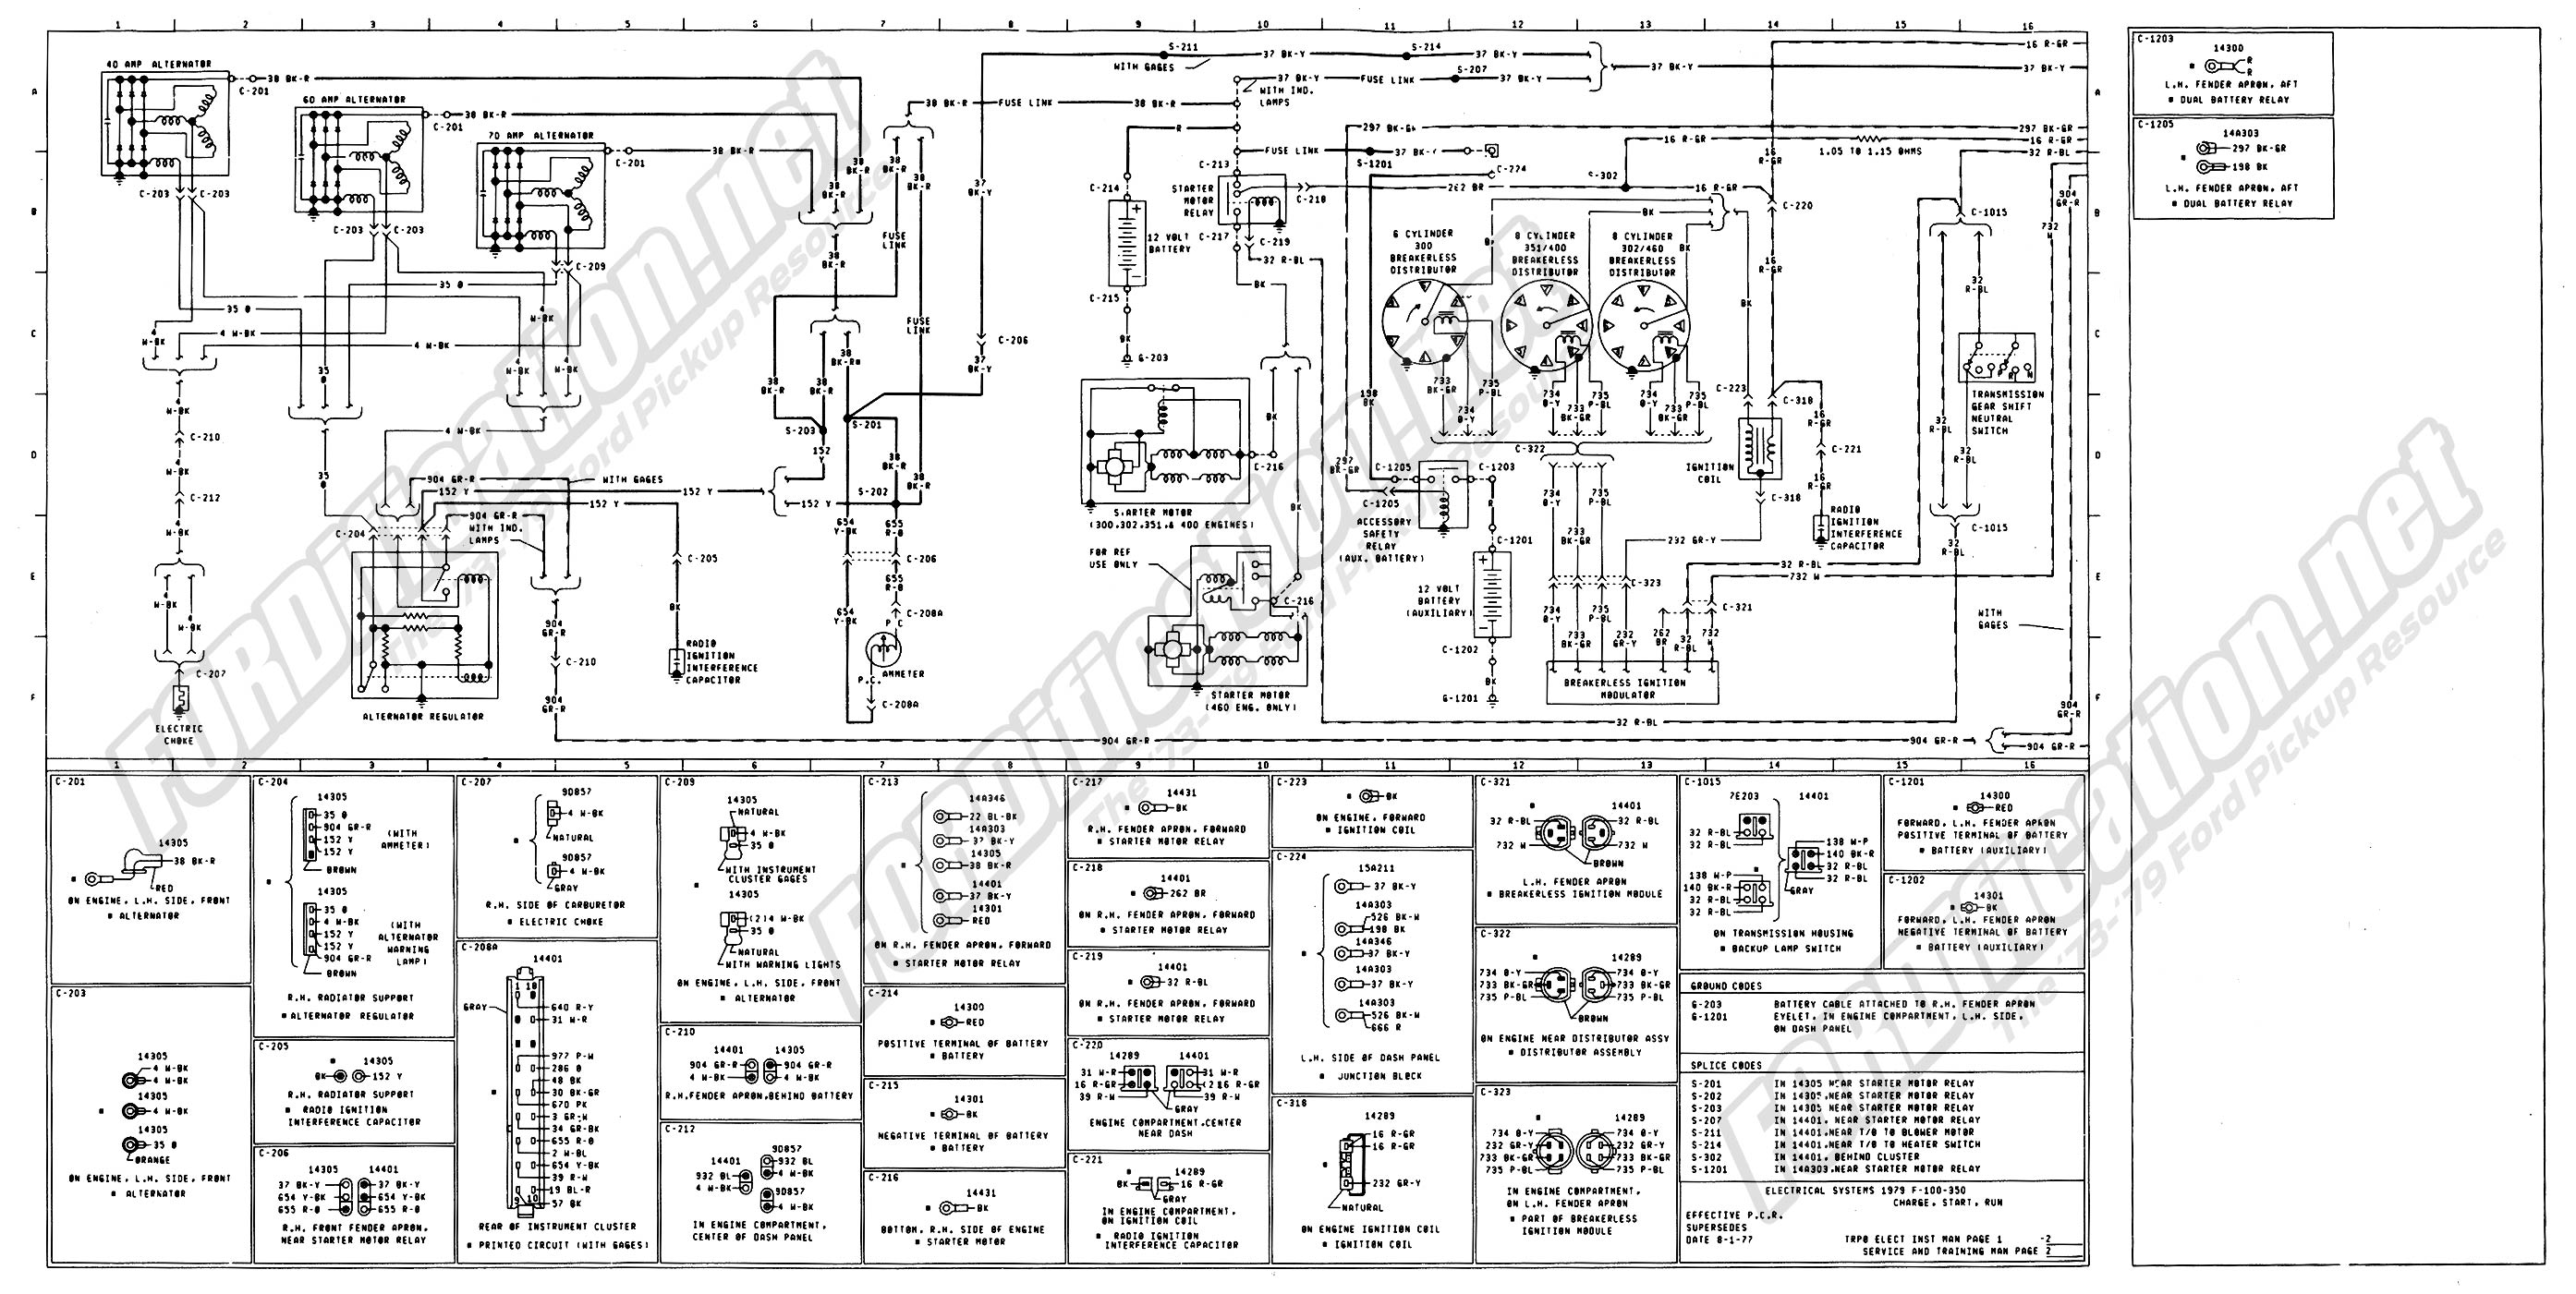 wiring_79master_2of9 1975 f150 ignition wiring diagram 97 f150 wiring diagram \u2022 wiring 84 ford f150 wiring diagram at mifinder.co